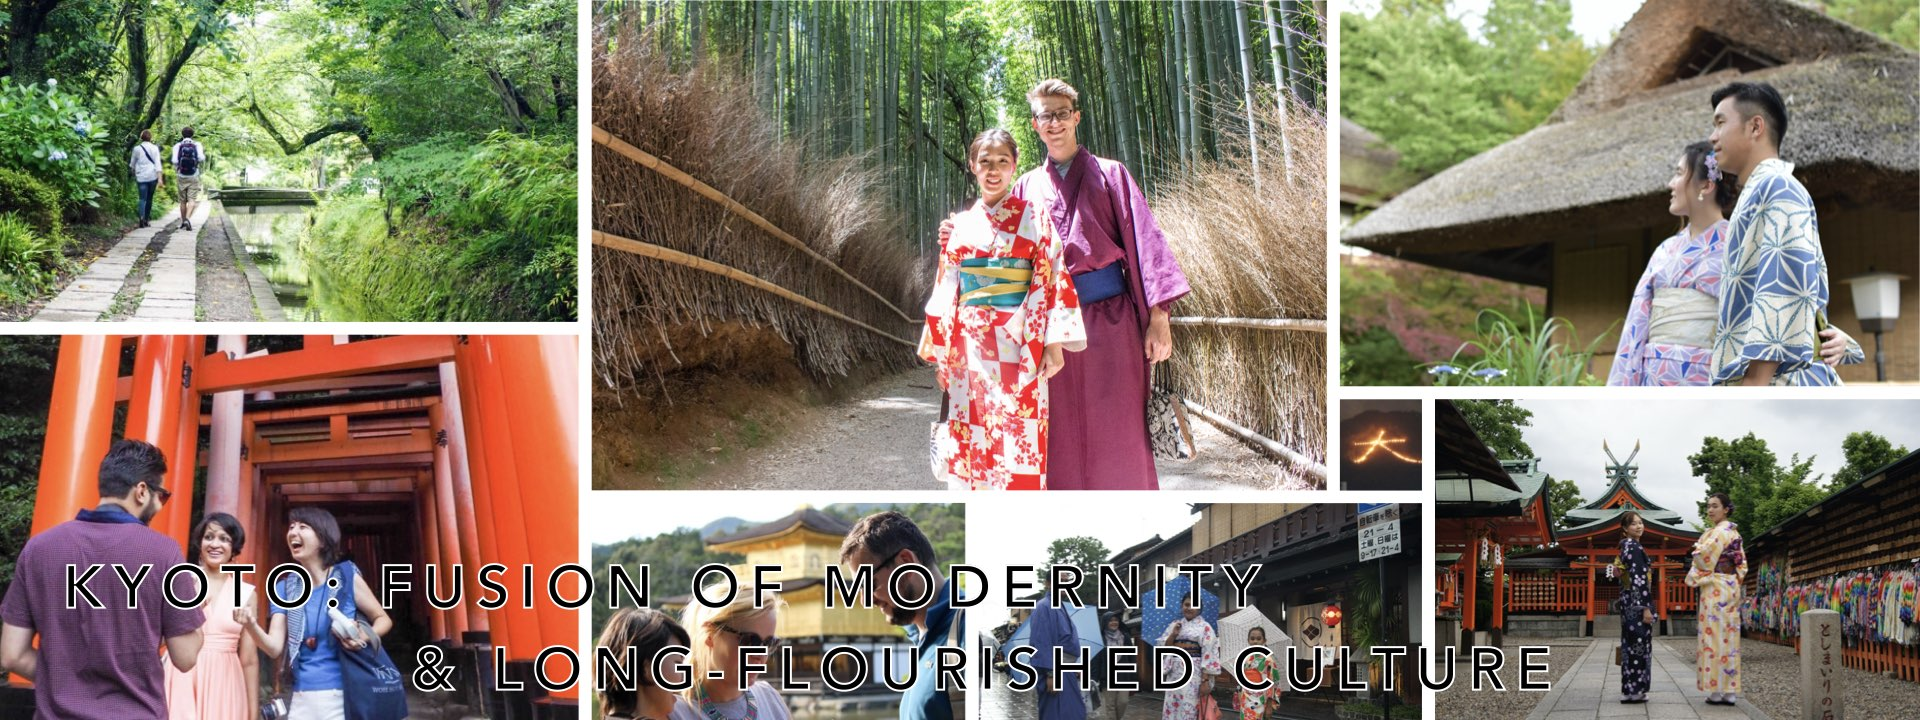 Kyoto: Fusion of modernity and long-flourished culture